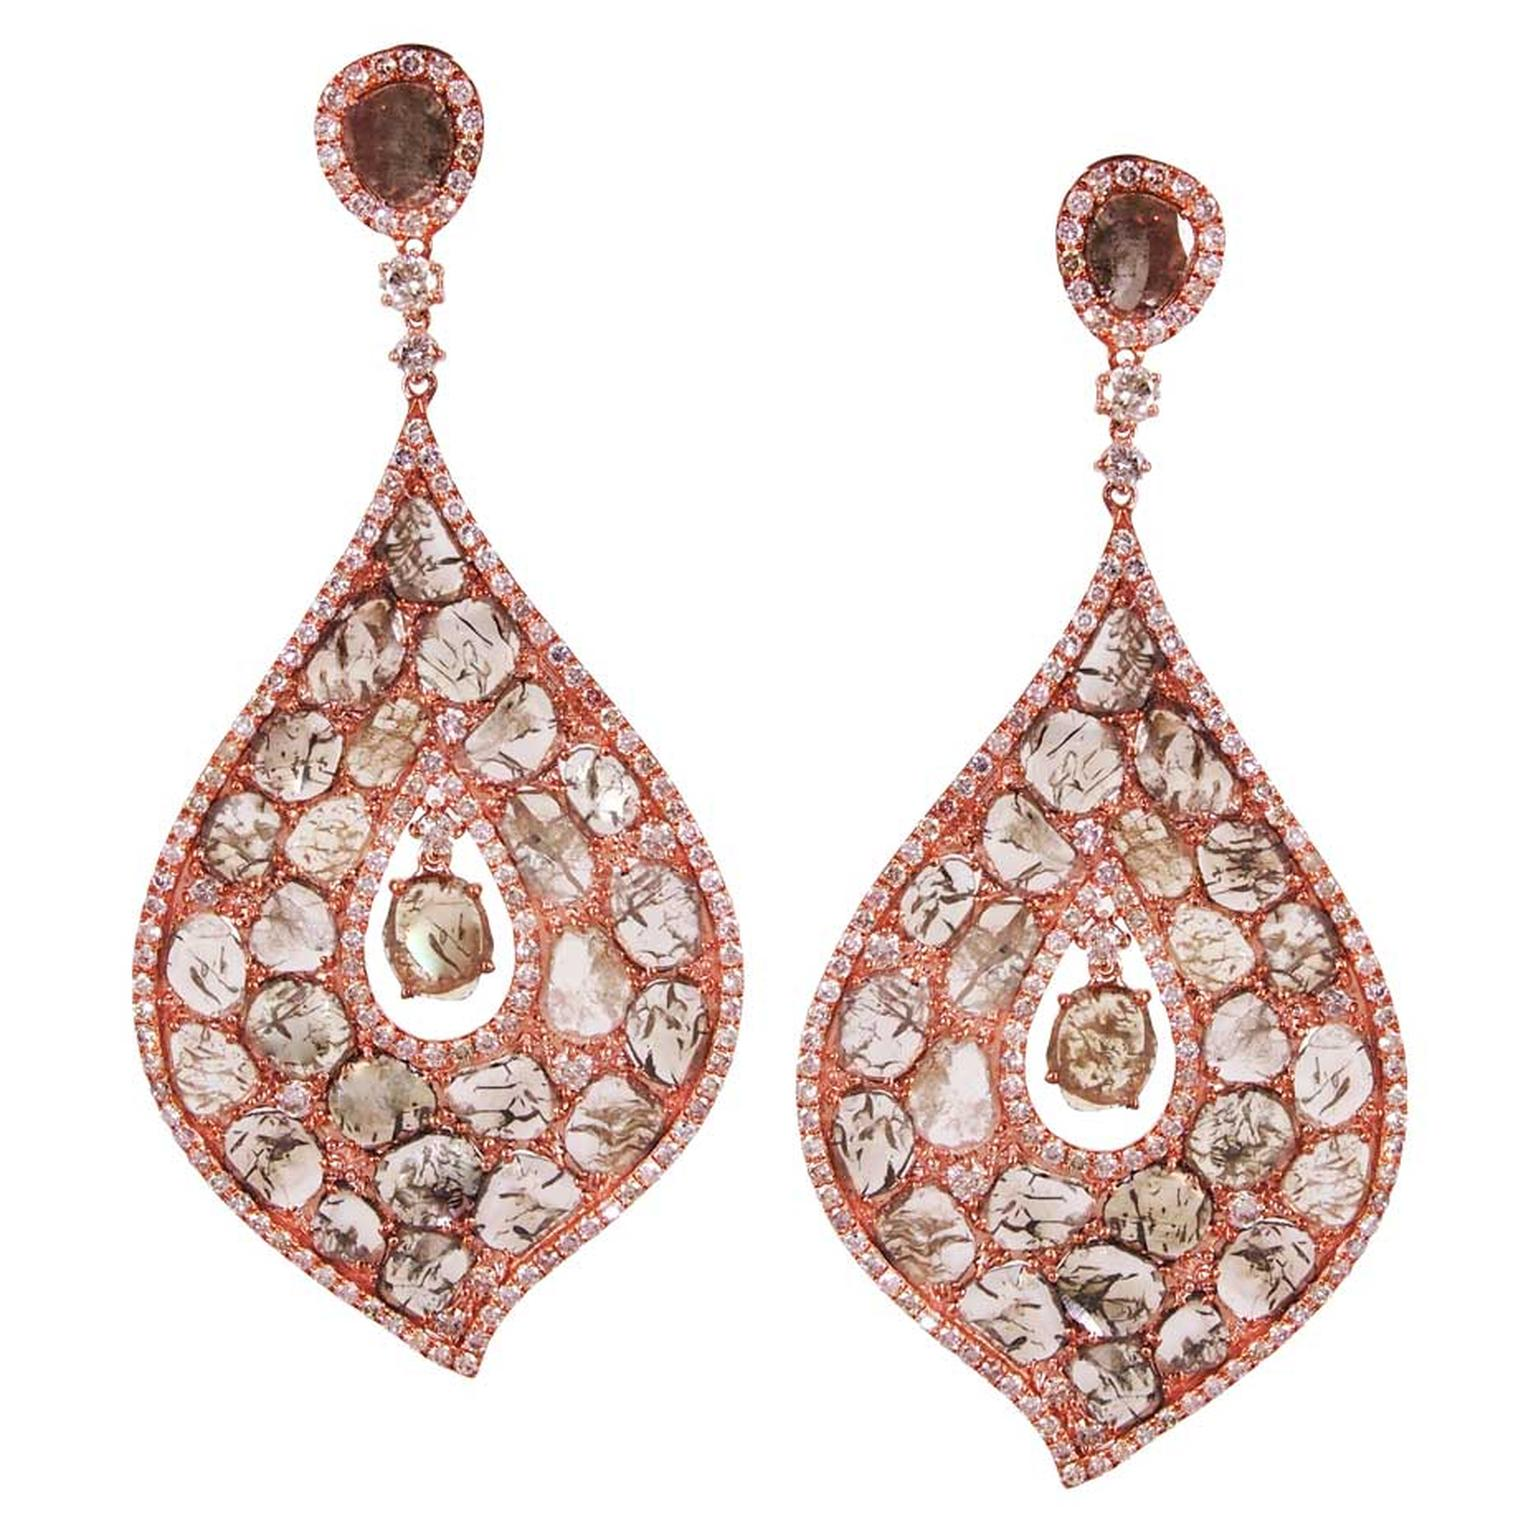 L'Dezen by Payal Shah Aladdin diamond drop earrings in rose gold, available at Plukka.com (£9,954).